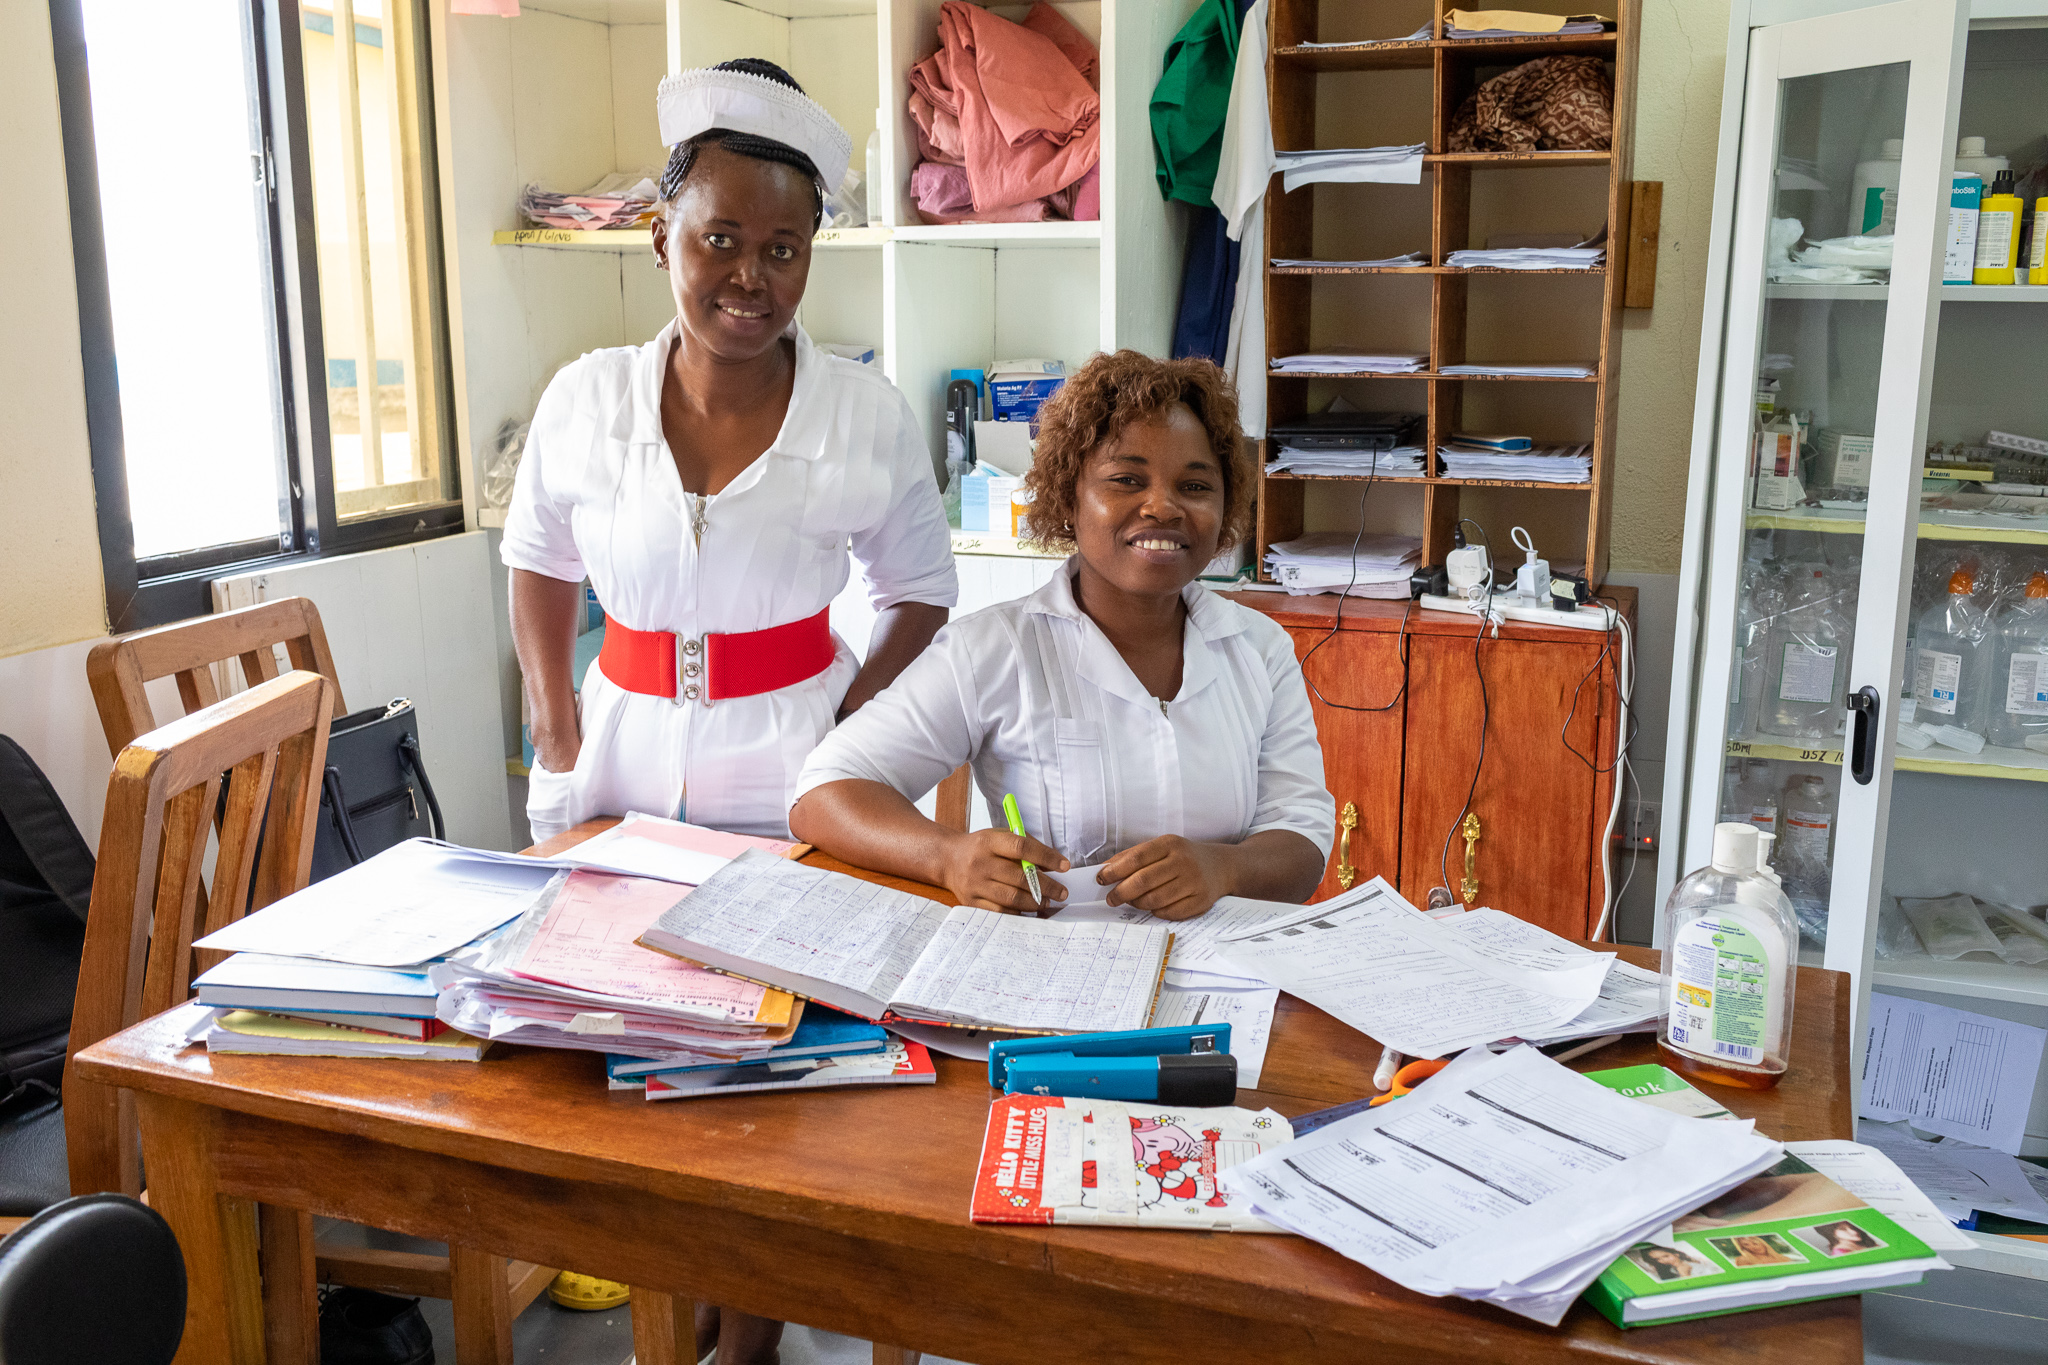 Emergency department nurses at a hospital in Sierra Leone